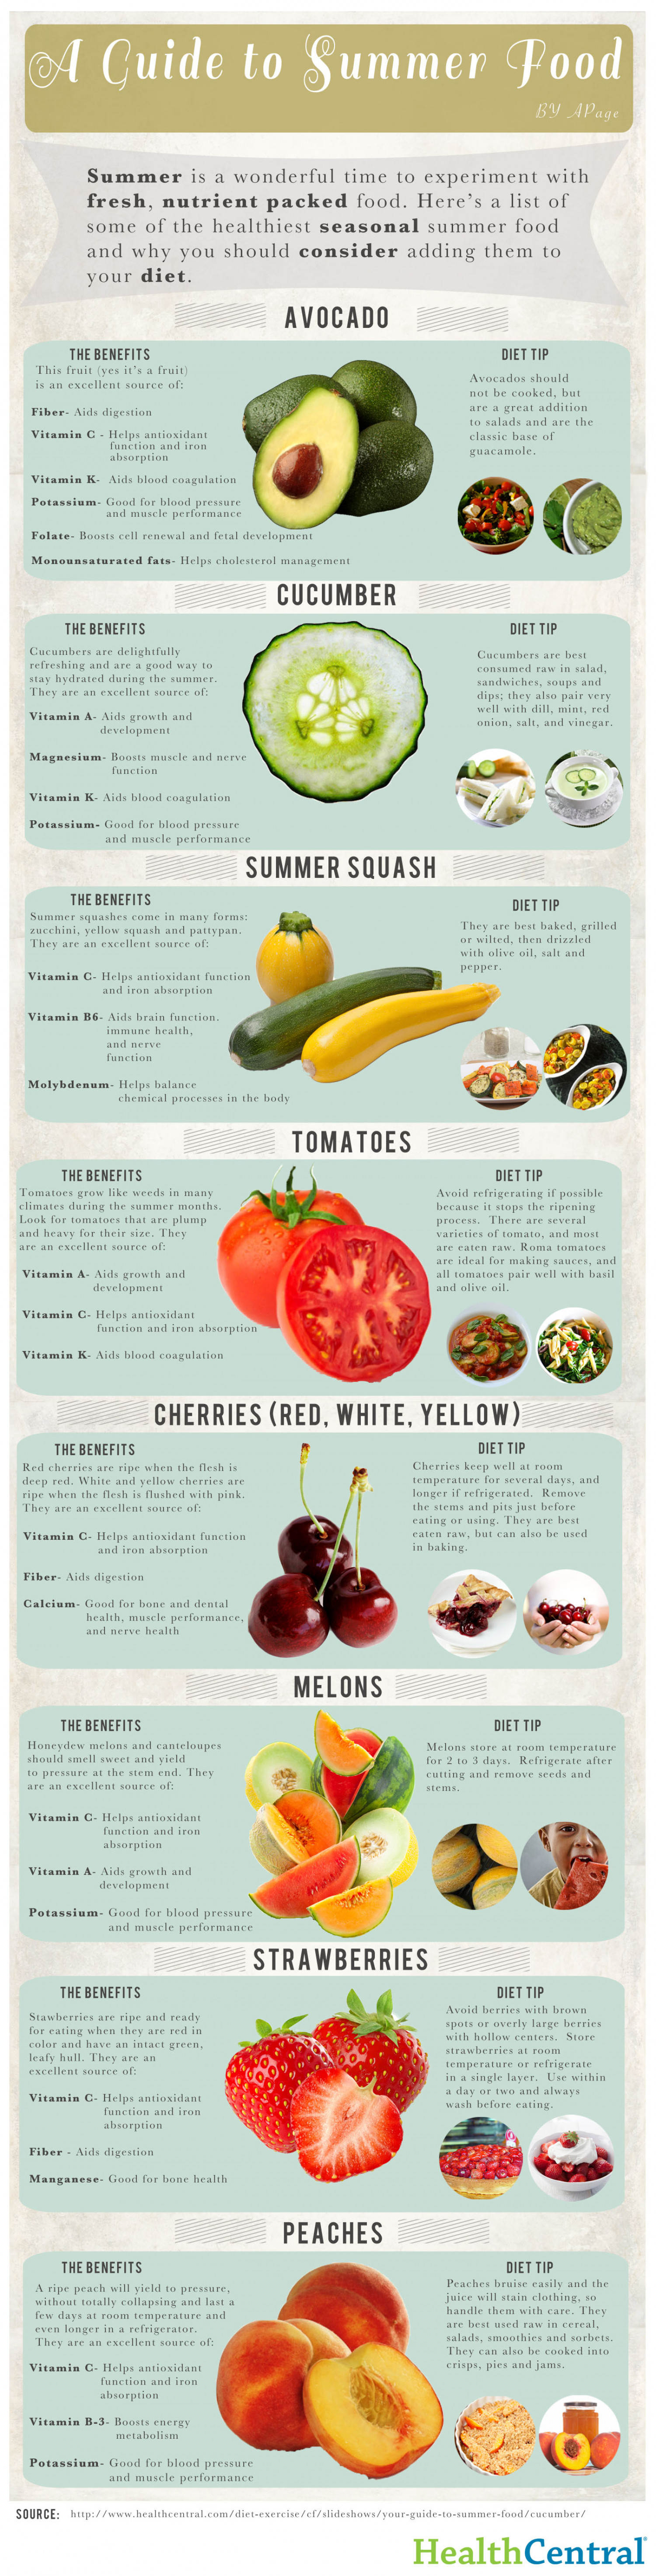 A Guide to Summer Food Infographic